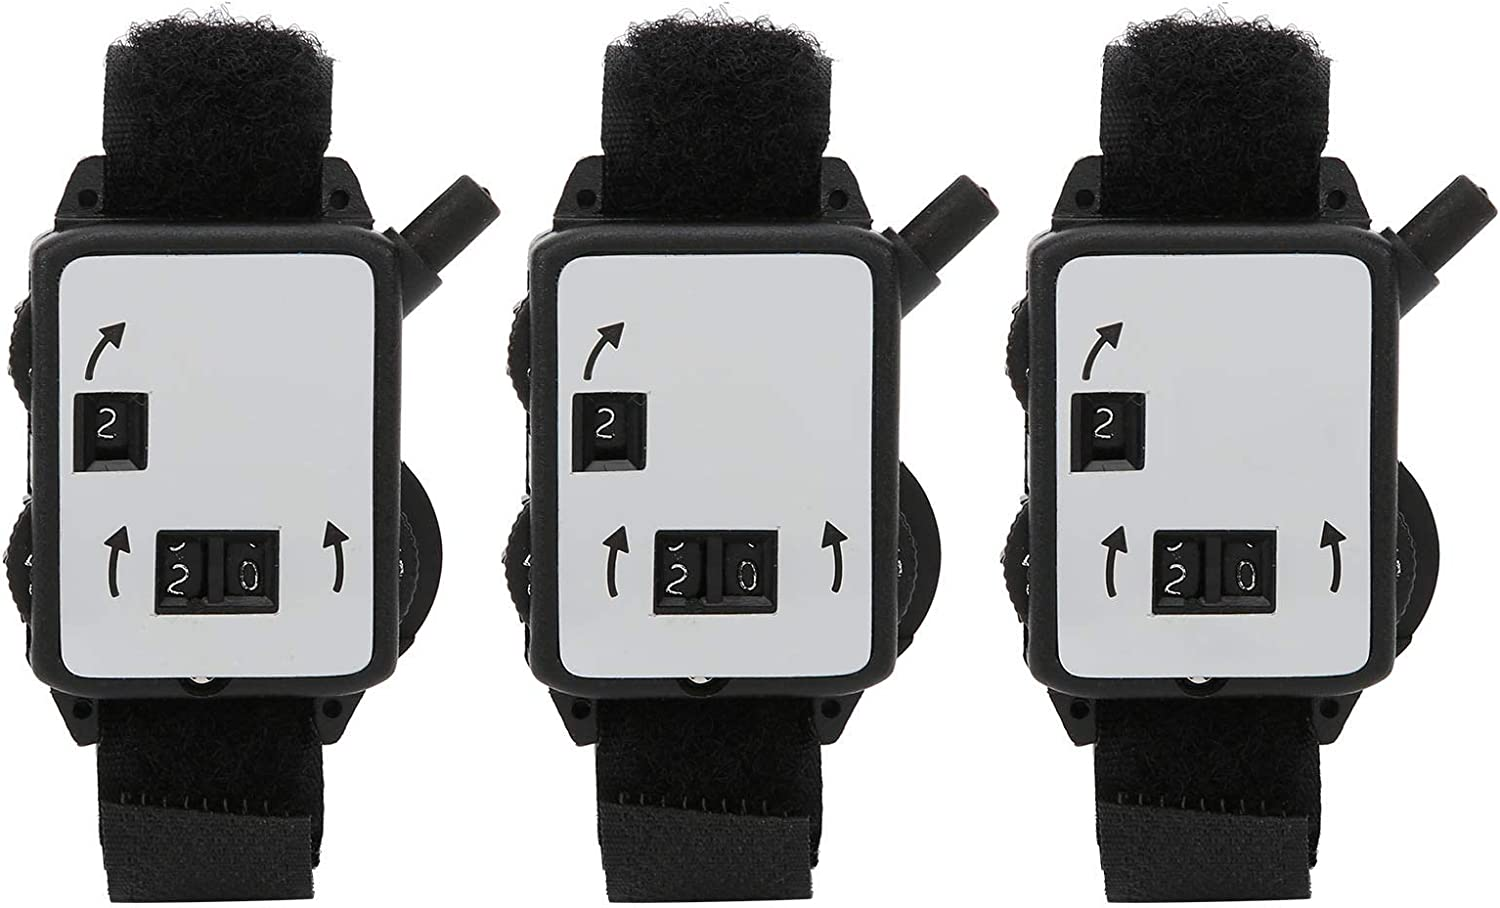 Golf Score Keeper Watch Counter Max 51% OFF to Convenient NEW before selling ☆ Type